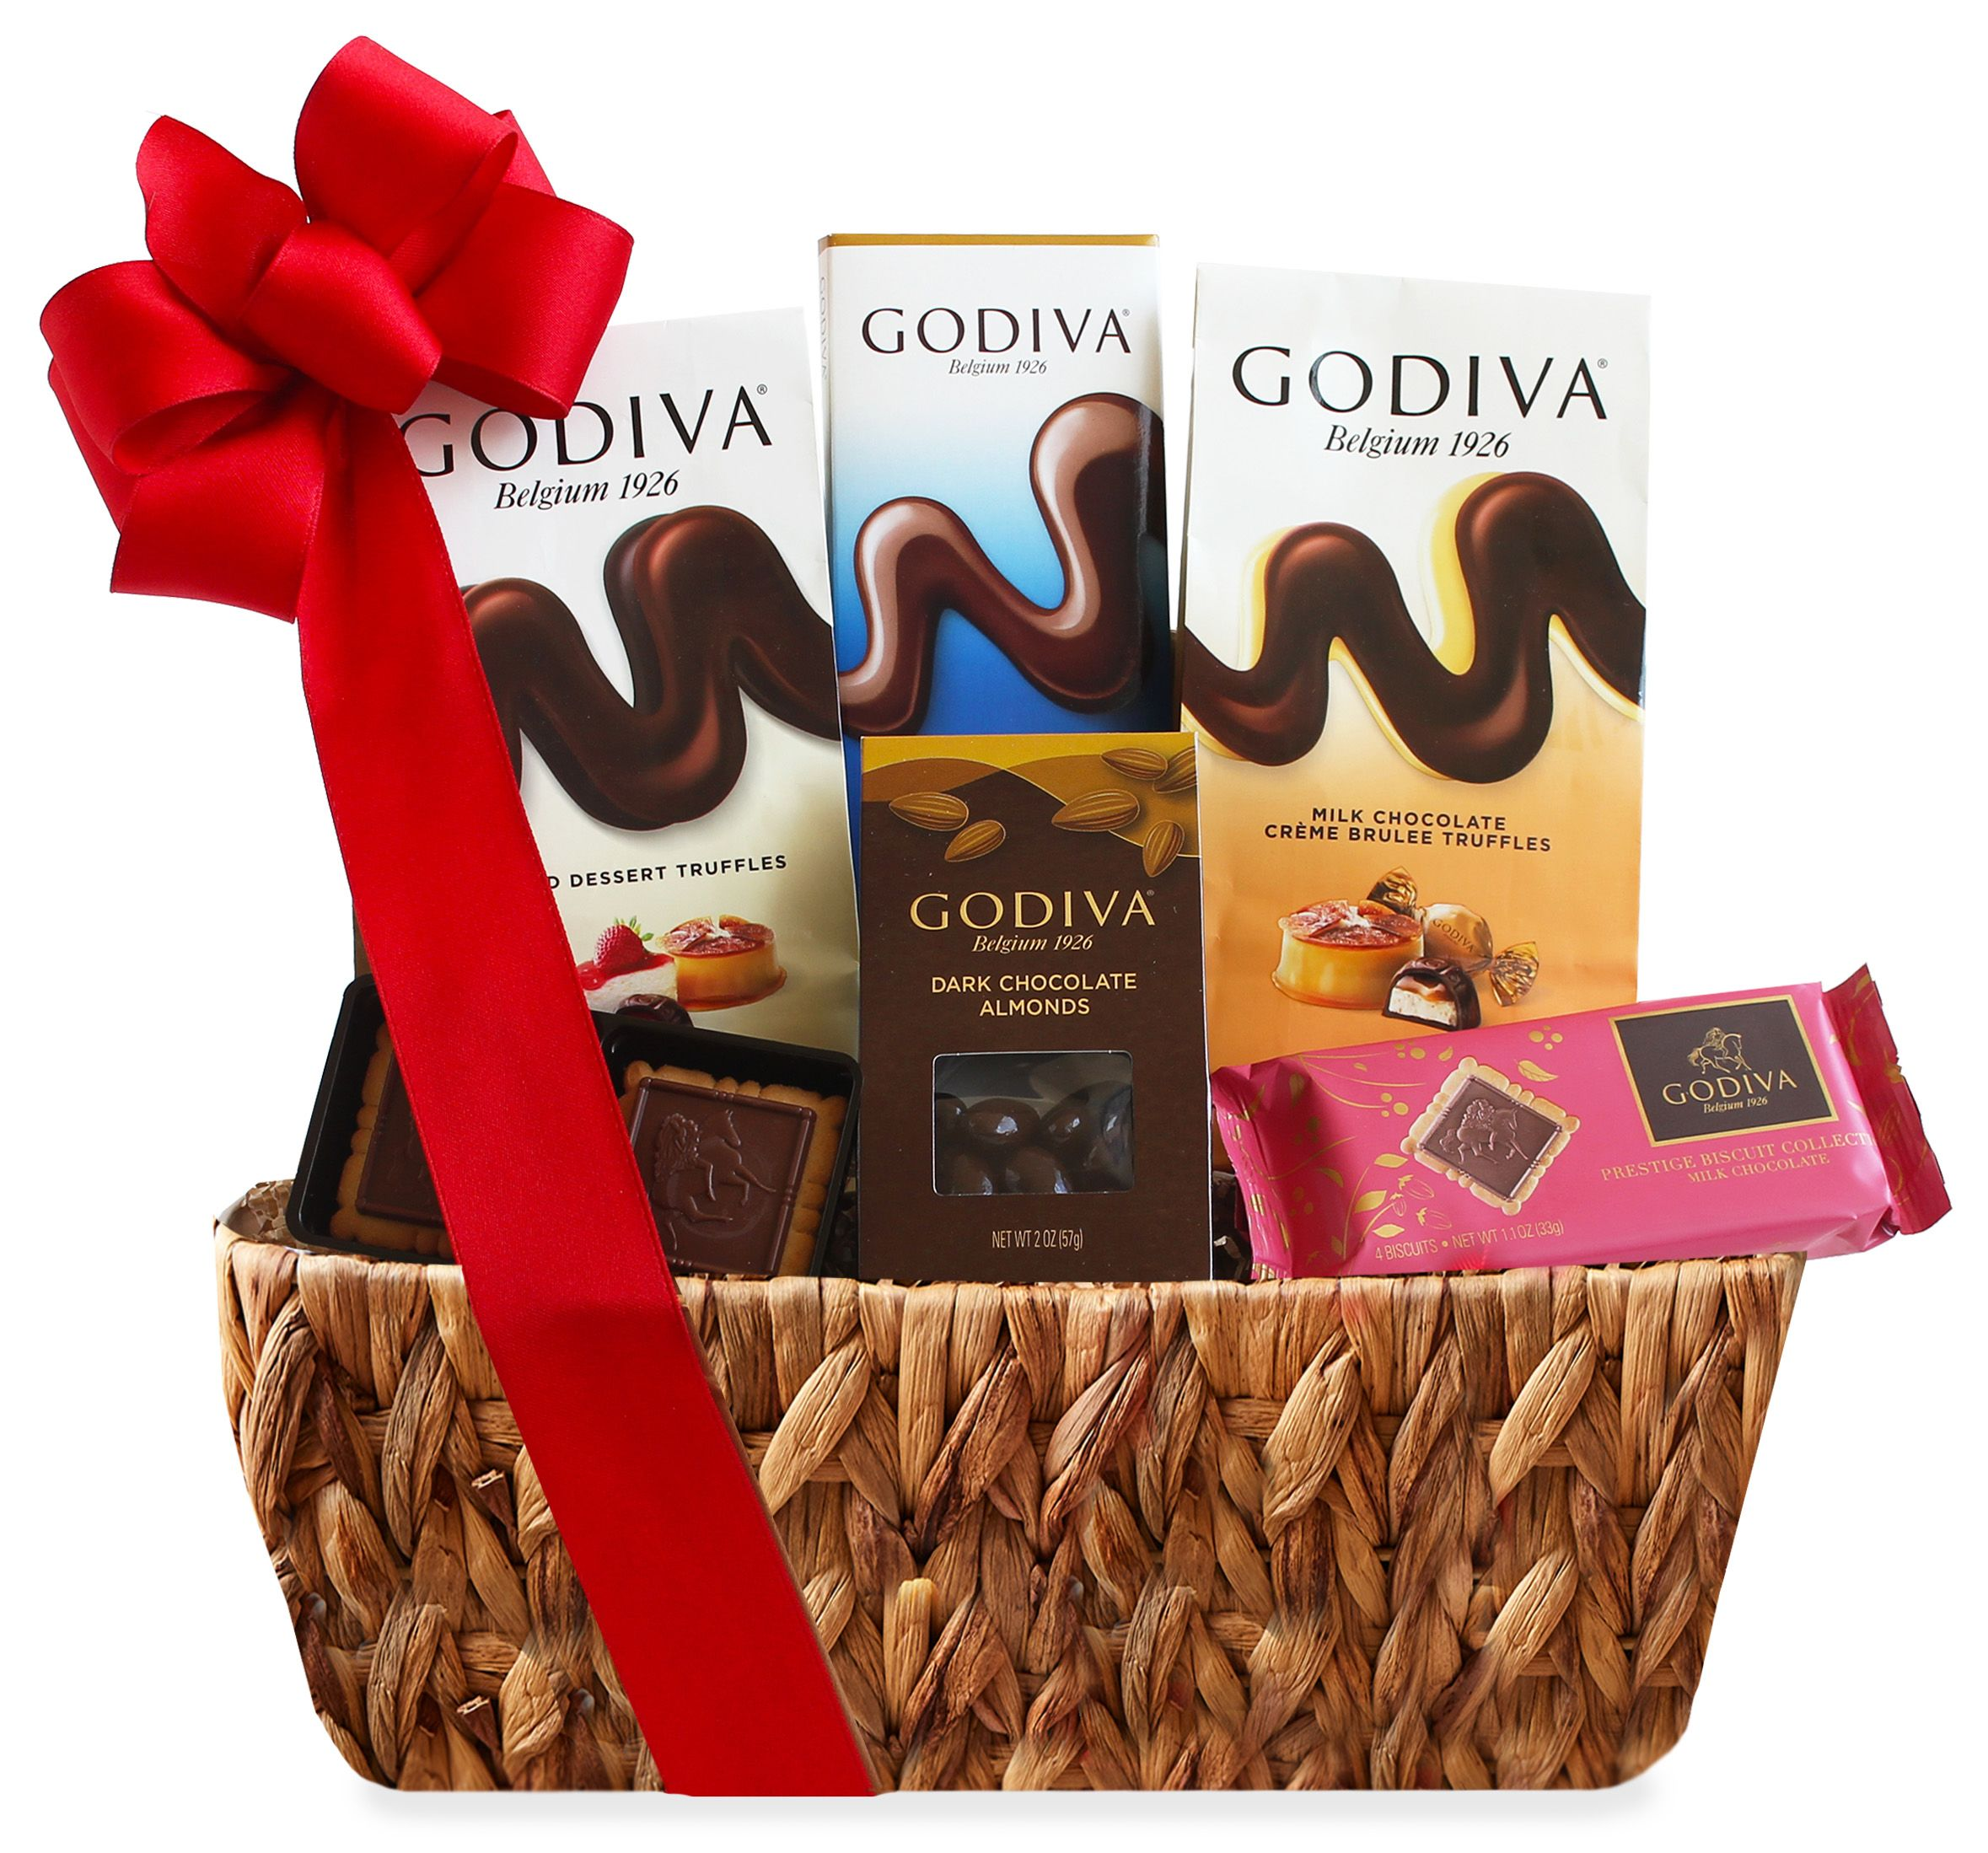 wine.com Godiva Chocolates Gift Basket  Gift Product Image